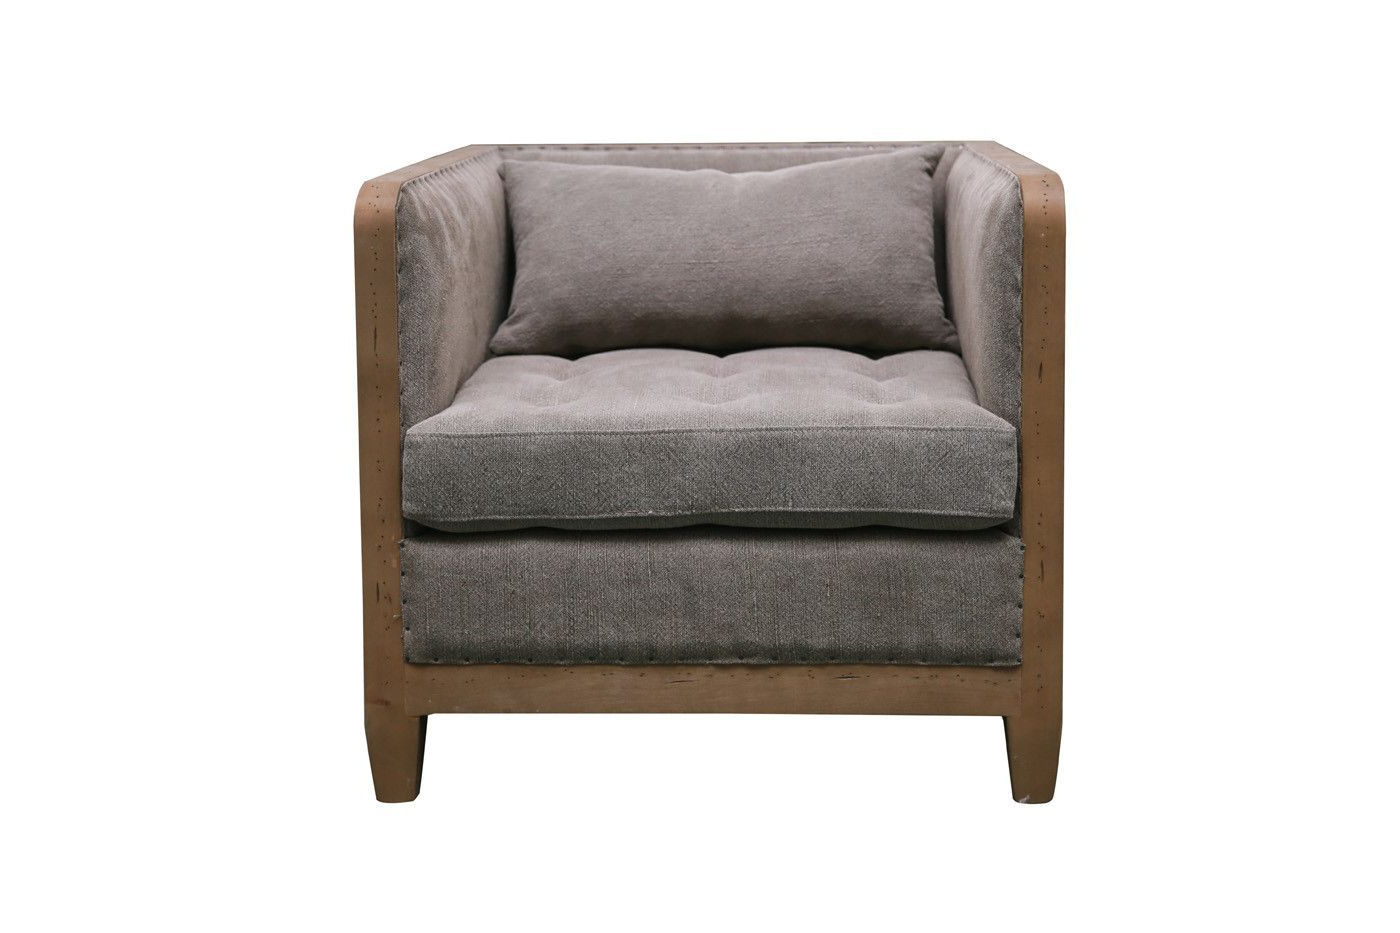 [%cosette Club Chair Grey Birch Frame 50% Linen | Products | Pinterest For Preferred Cosette Leather Sofa Chairs|cosette Leather Sofa Chairs For Favorite Cosette Club Chair Grey Birch Frame 50% Linen | Products | Pinterest|most Current Cosette Leather Sofa Chairs With Cosette Club Chair Grey Birch Frame 50% Linen | Products | Pinterest|most Up To Date Cosette Club Chair Grey Birch Frame 50% Linen | Products | Pinterest With Regard To Cosette Leather Sofa Chairs%] (View 8 of 20)